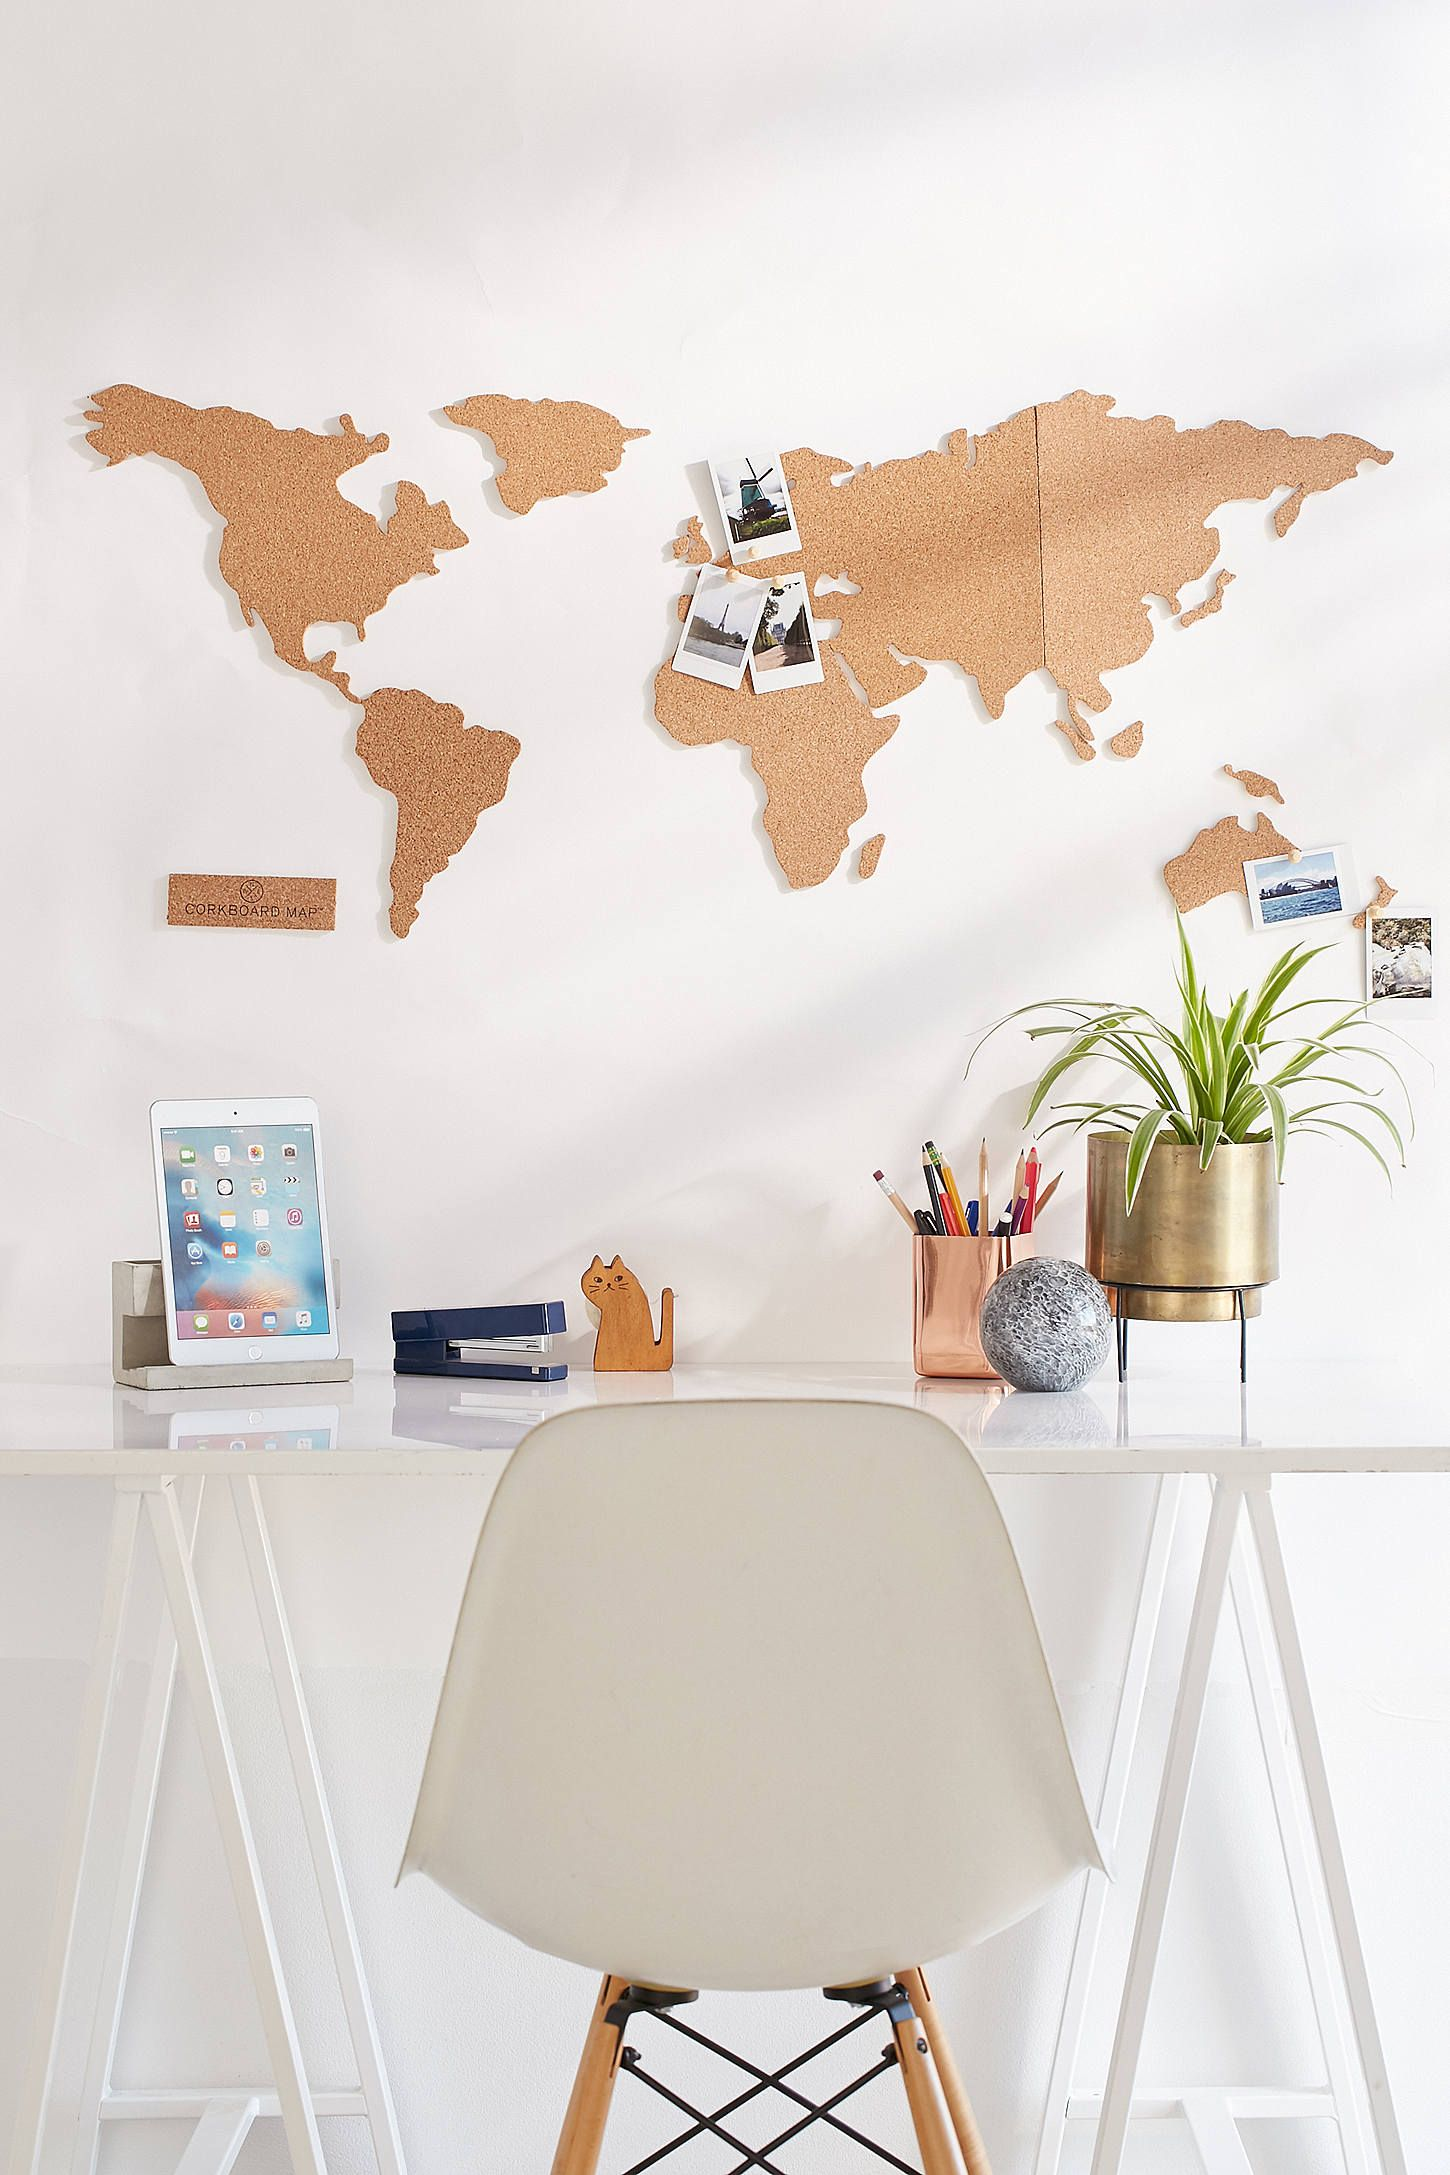 Cork board world map pinterest cork boards cork and apartments shop cork board world map at urban outfitters today we carry all the latest styles colors and brands for you to choose from right here gumiabroncs Images